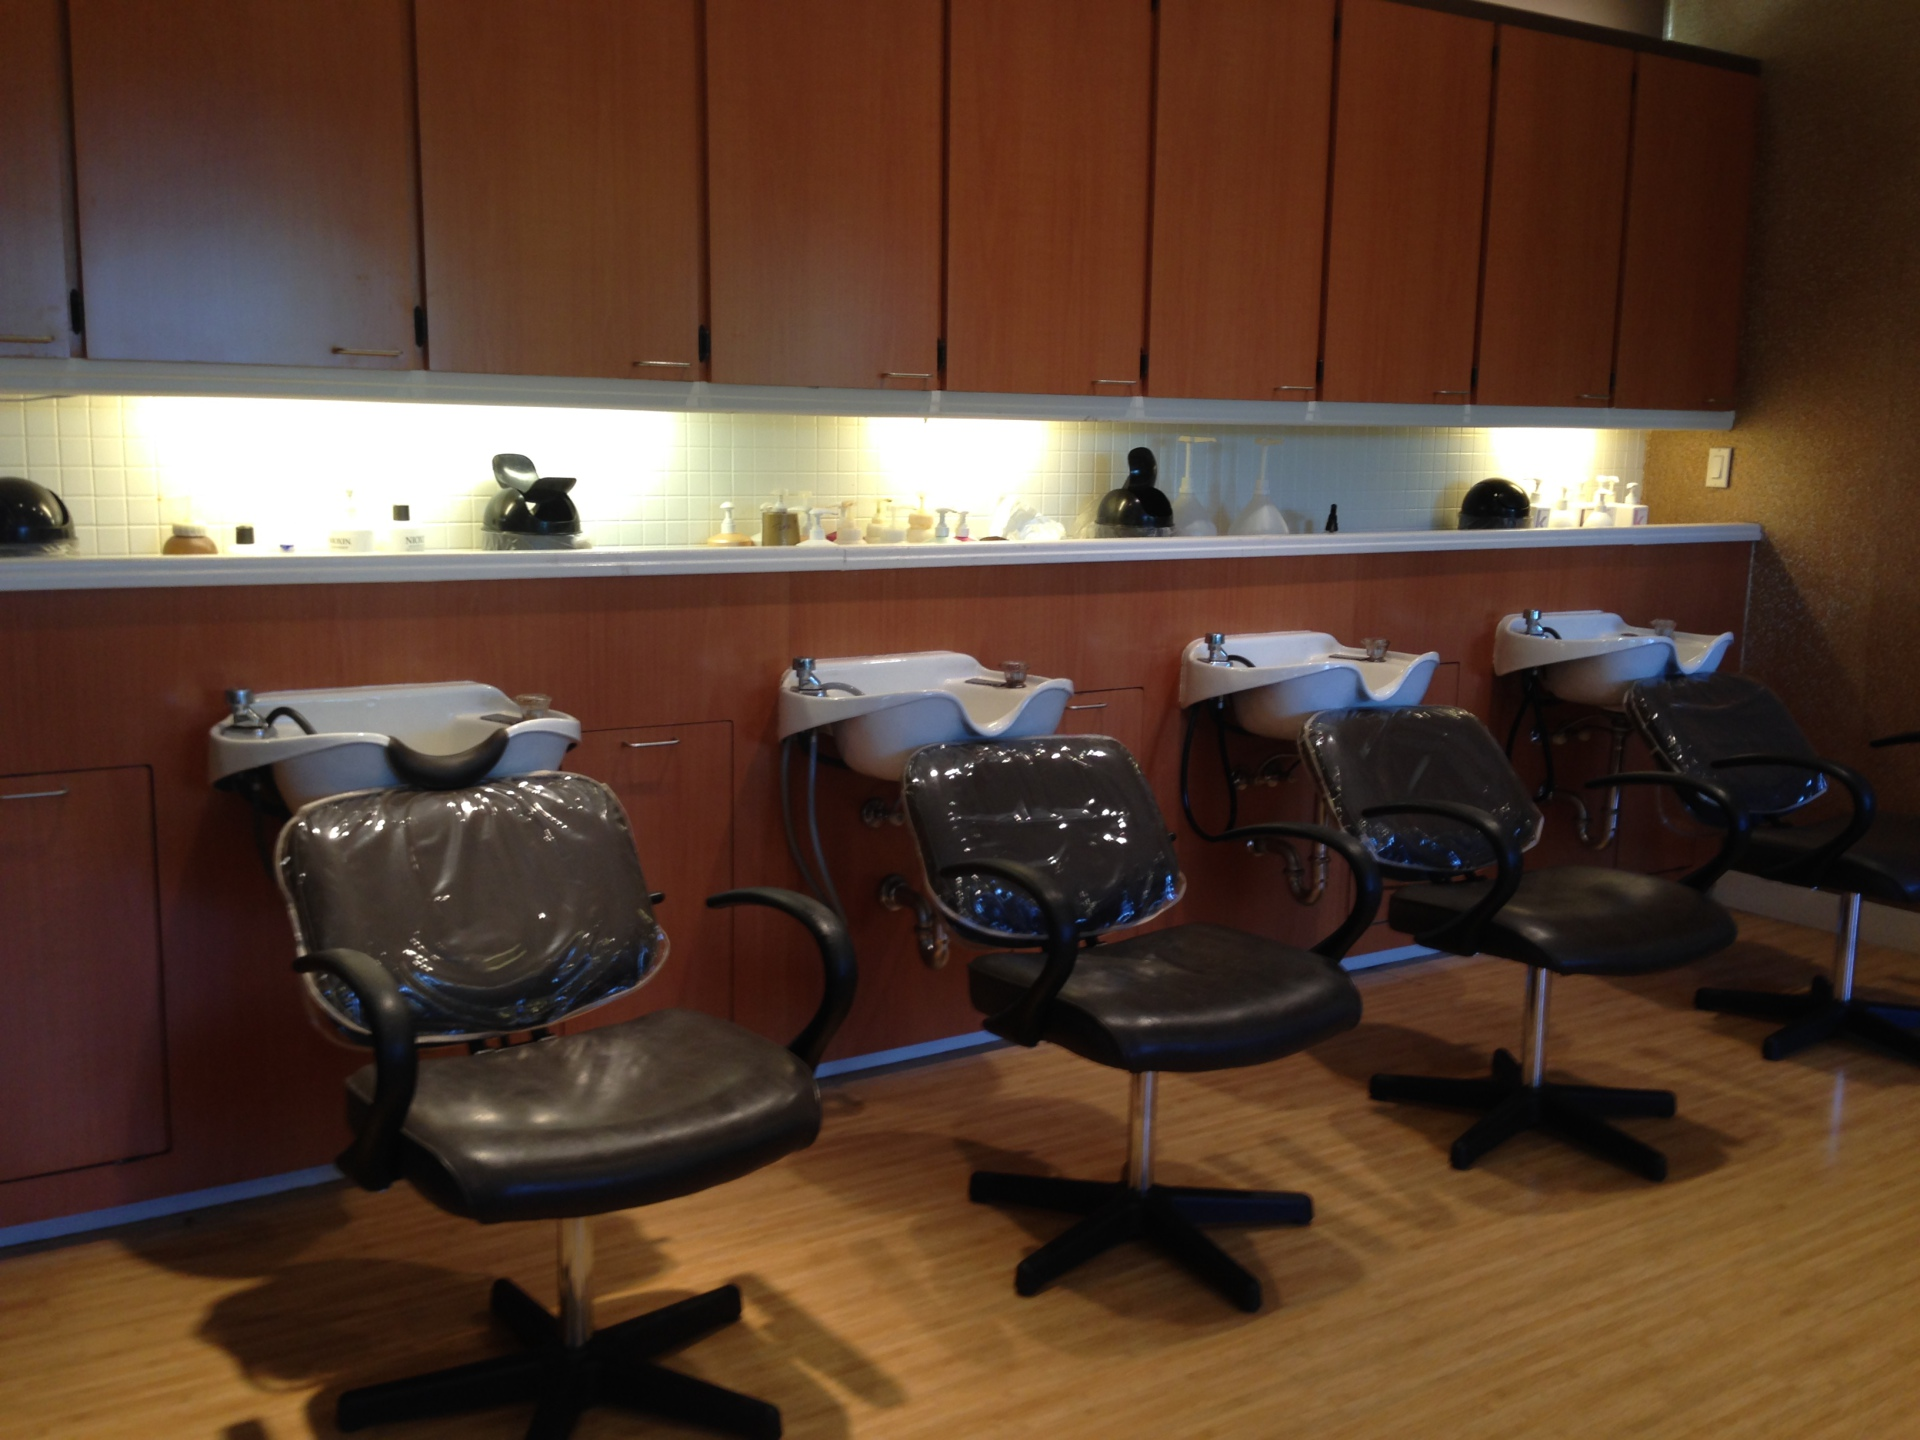 Robert Jenson Salon